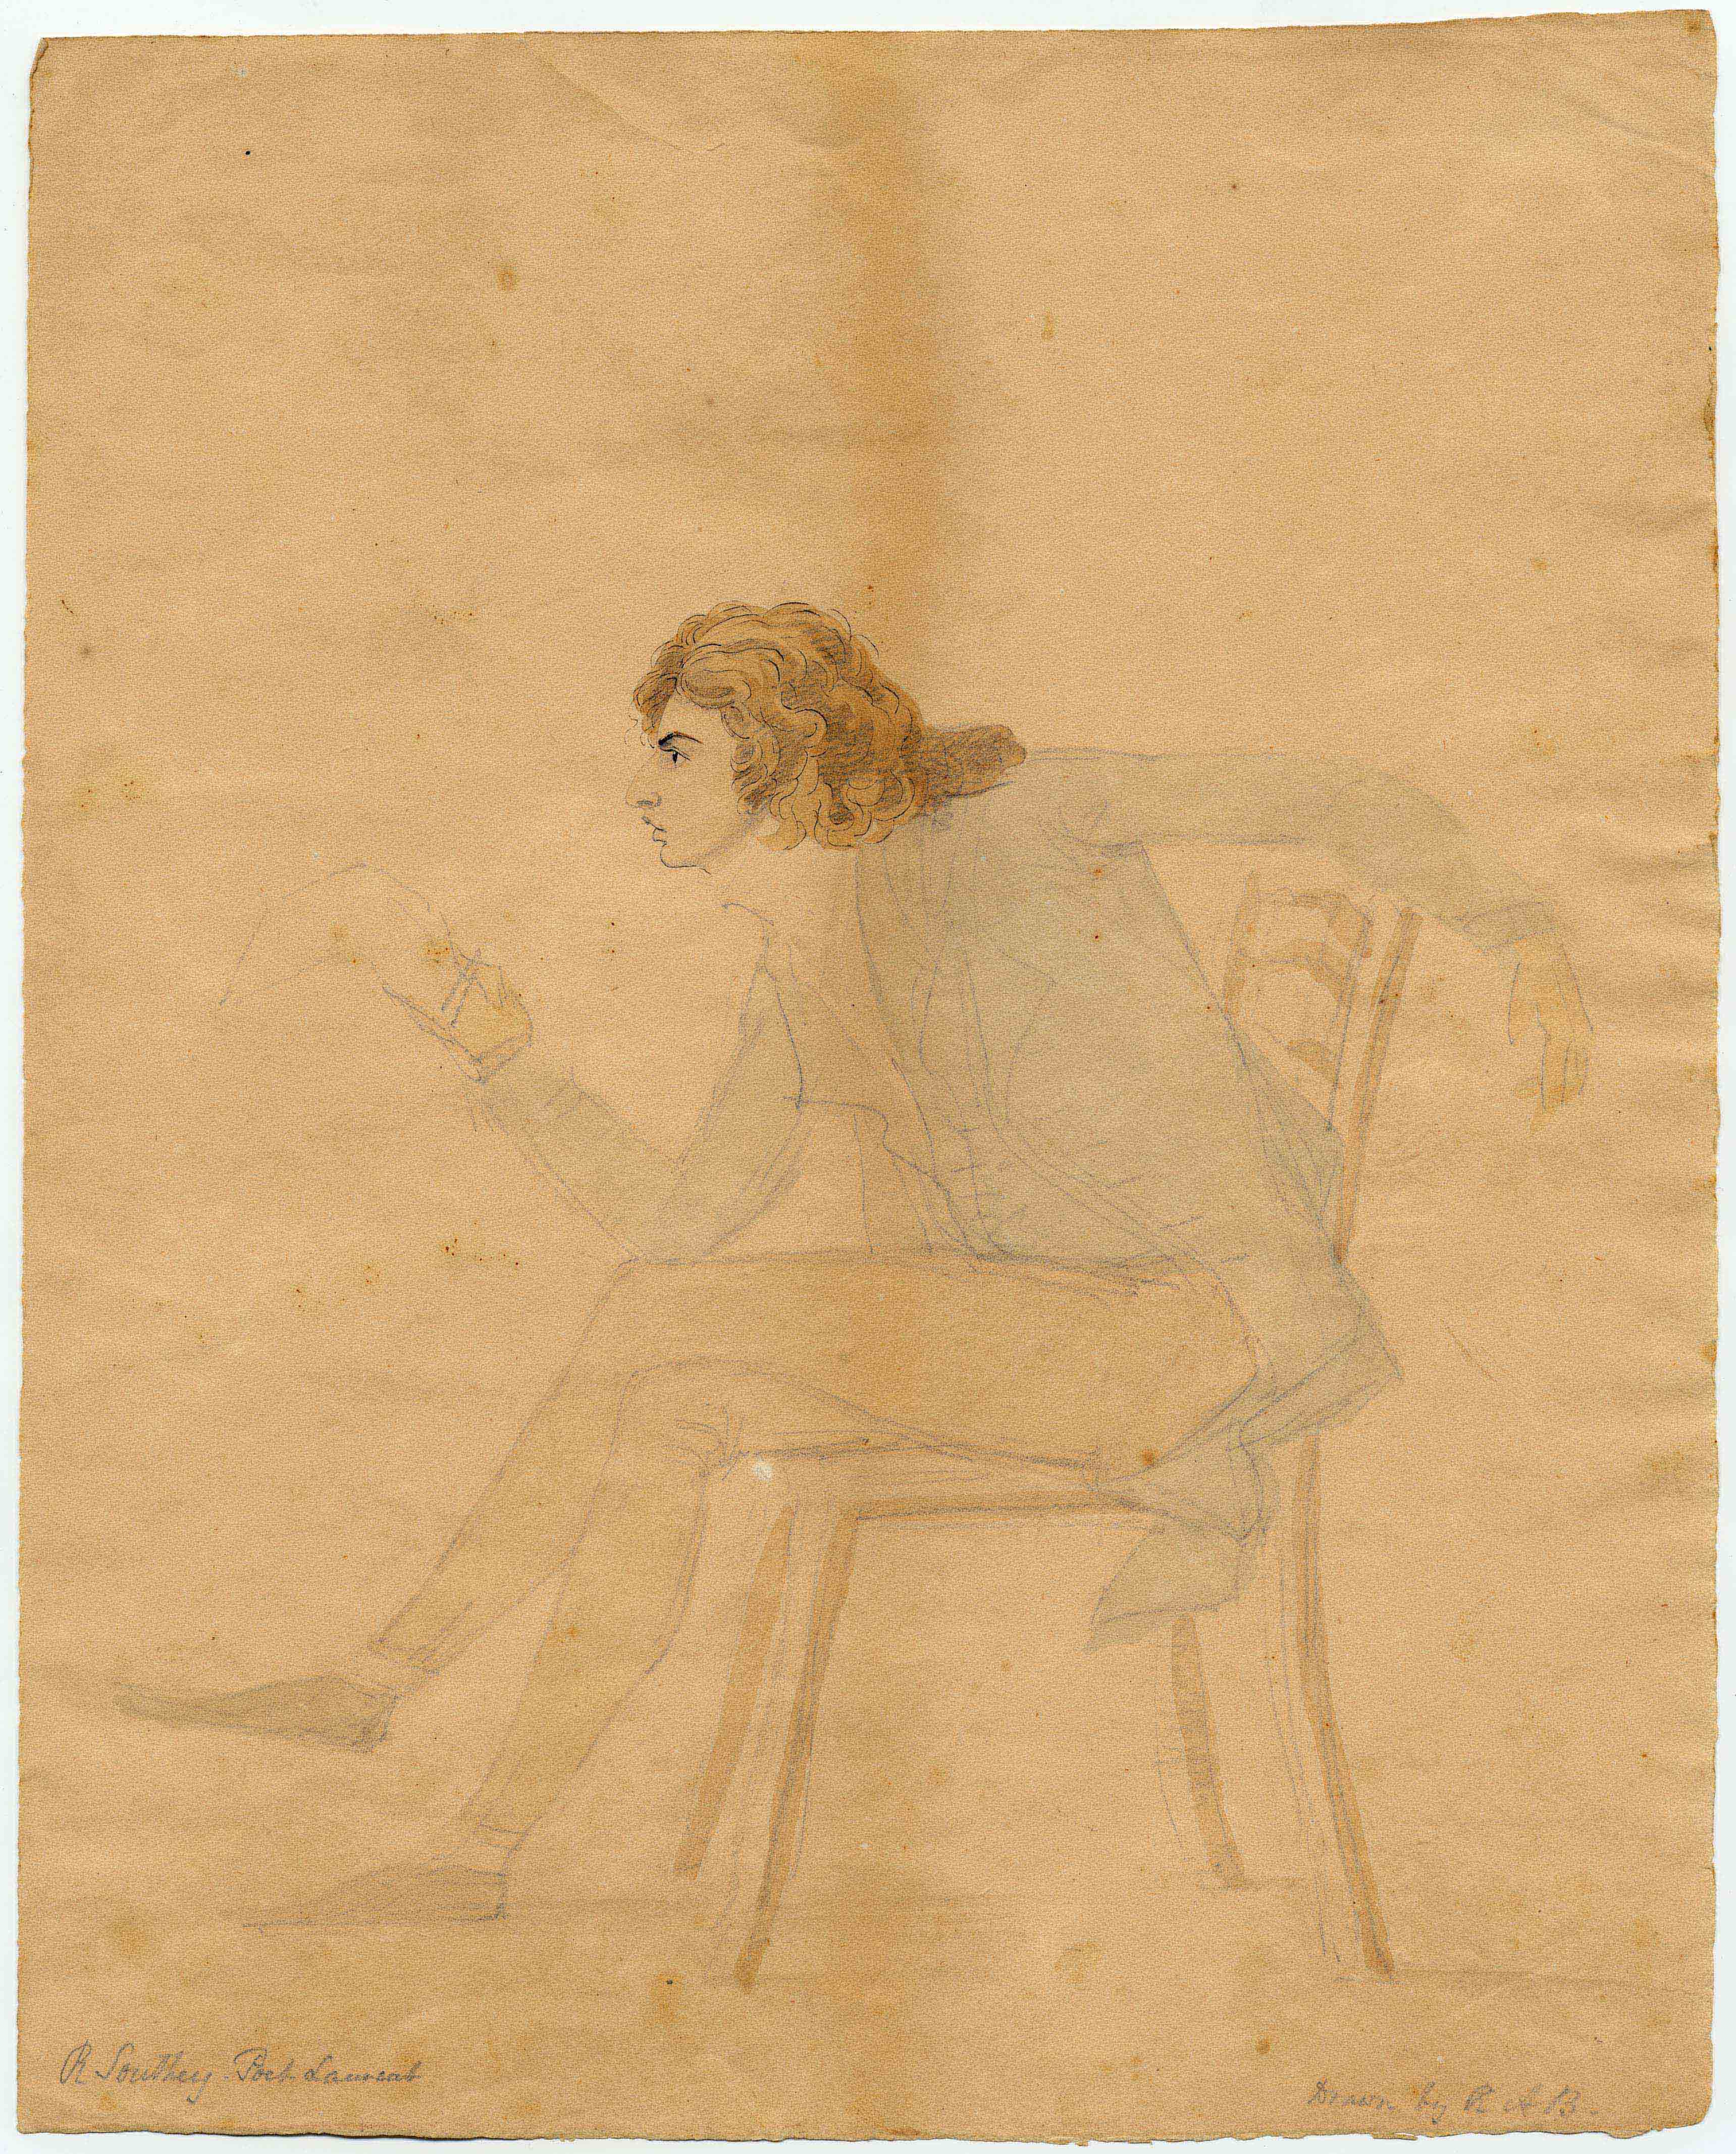 A sketch of a man with brown hair leaning forward, holding a document